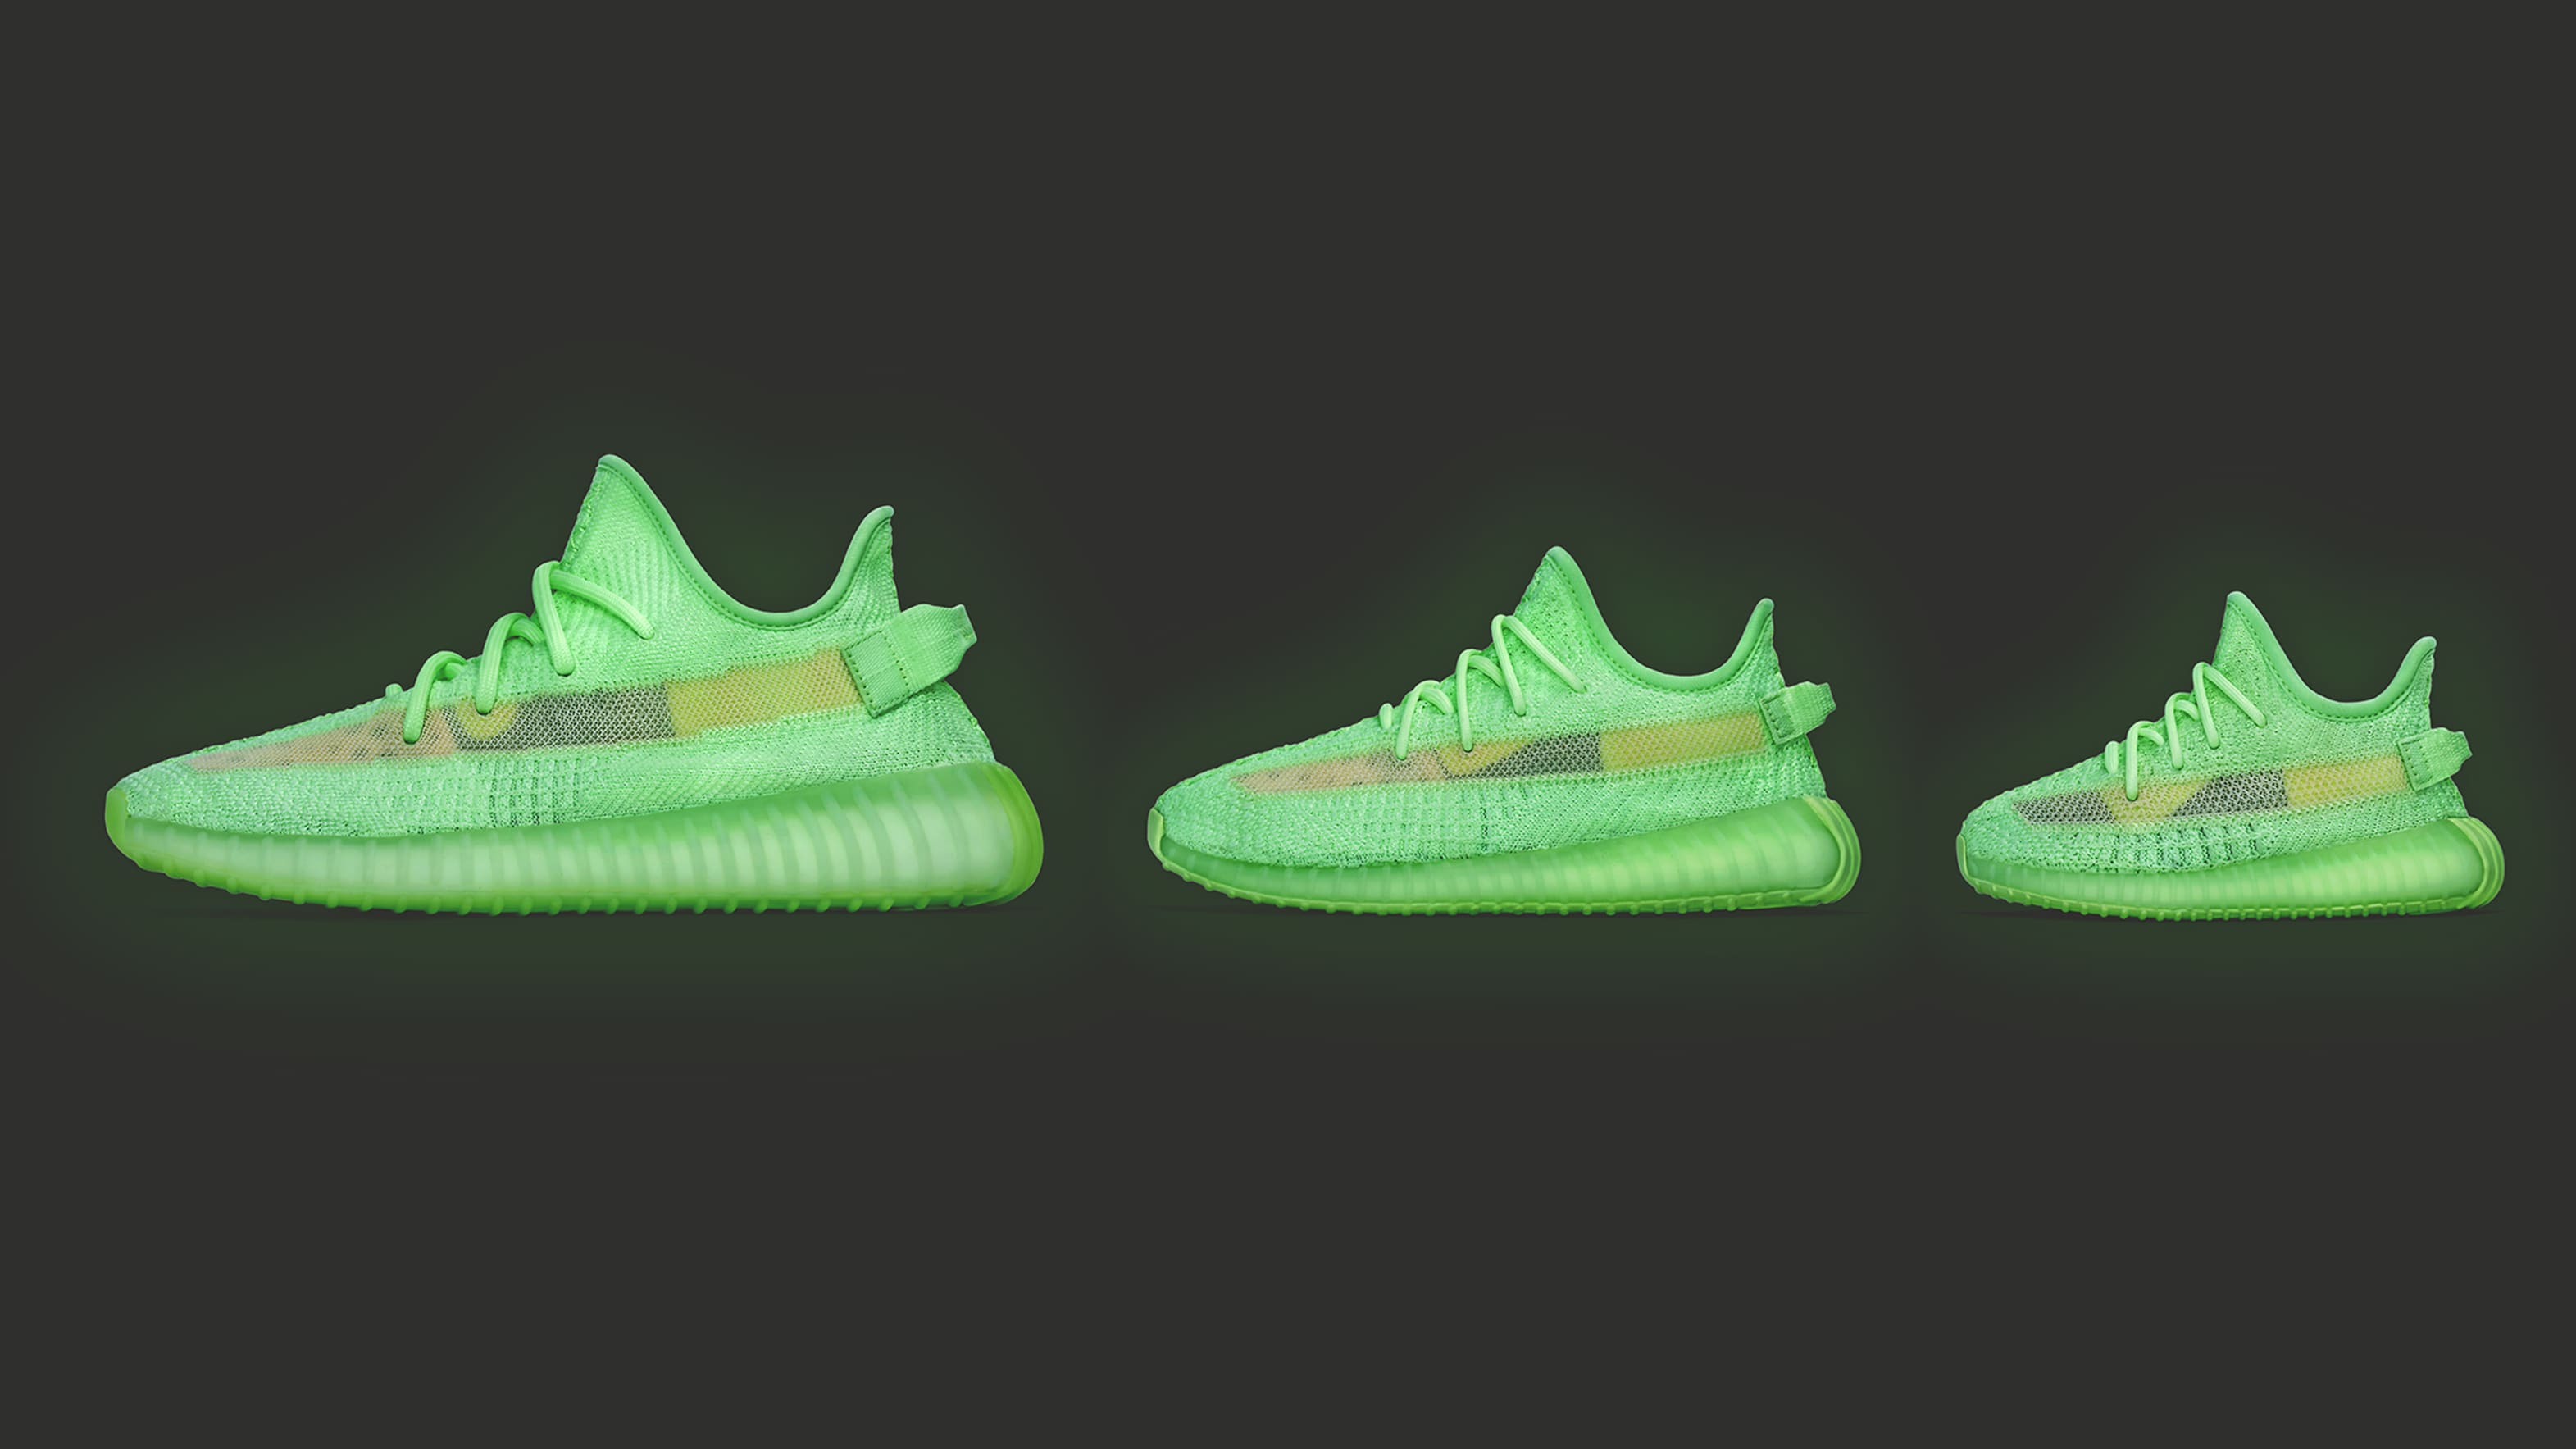 Adidas Yeezy Boost 350 V2 'Glow in the Dark' Release Date